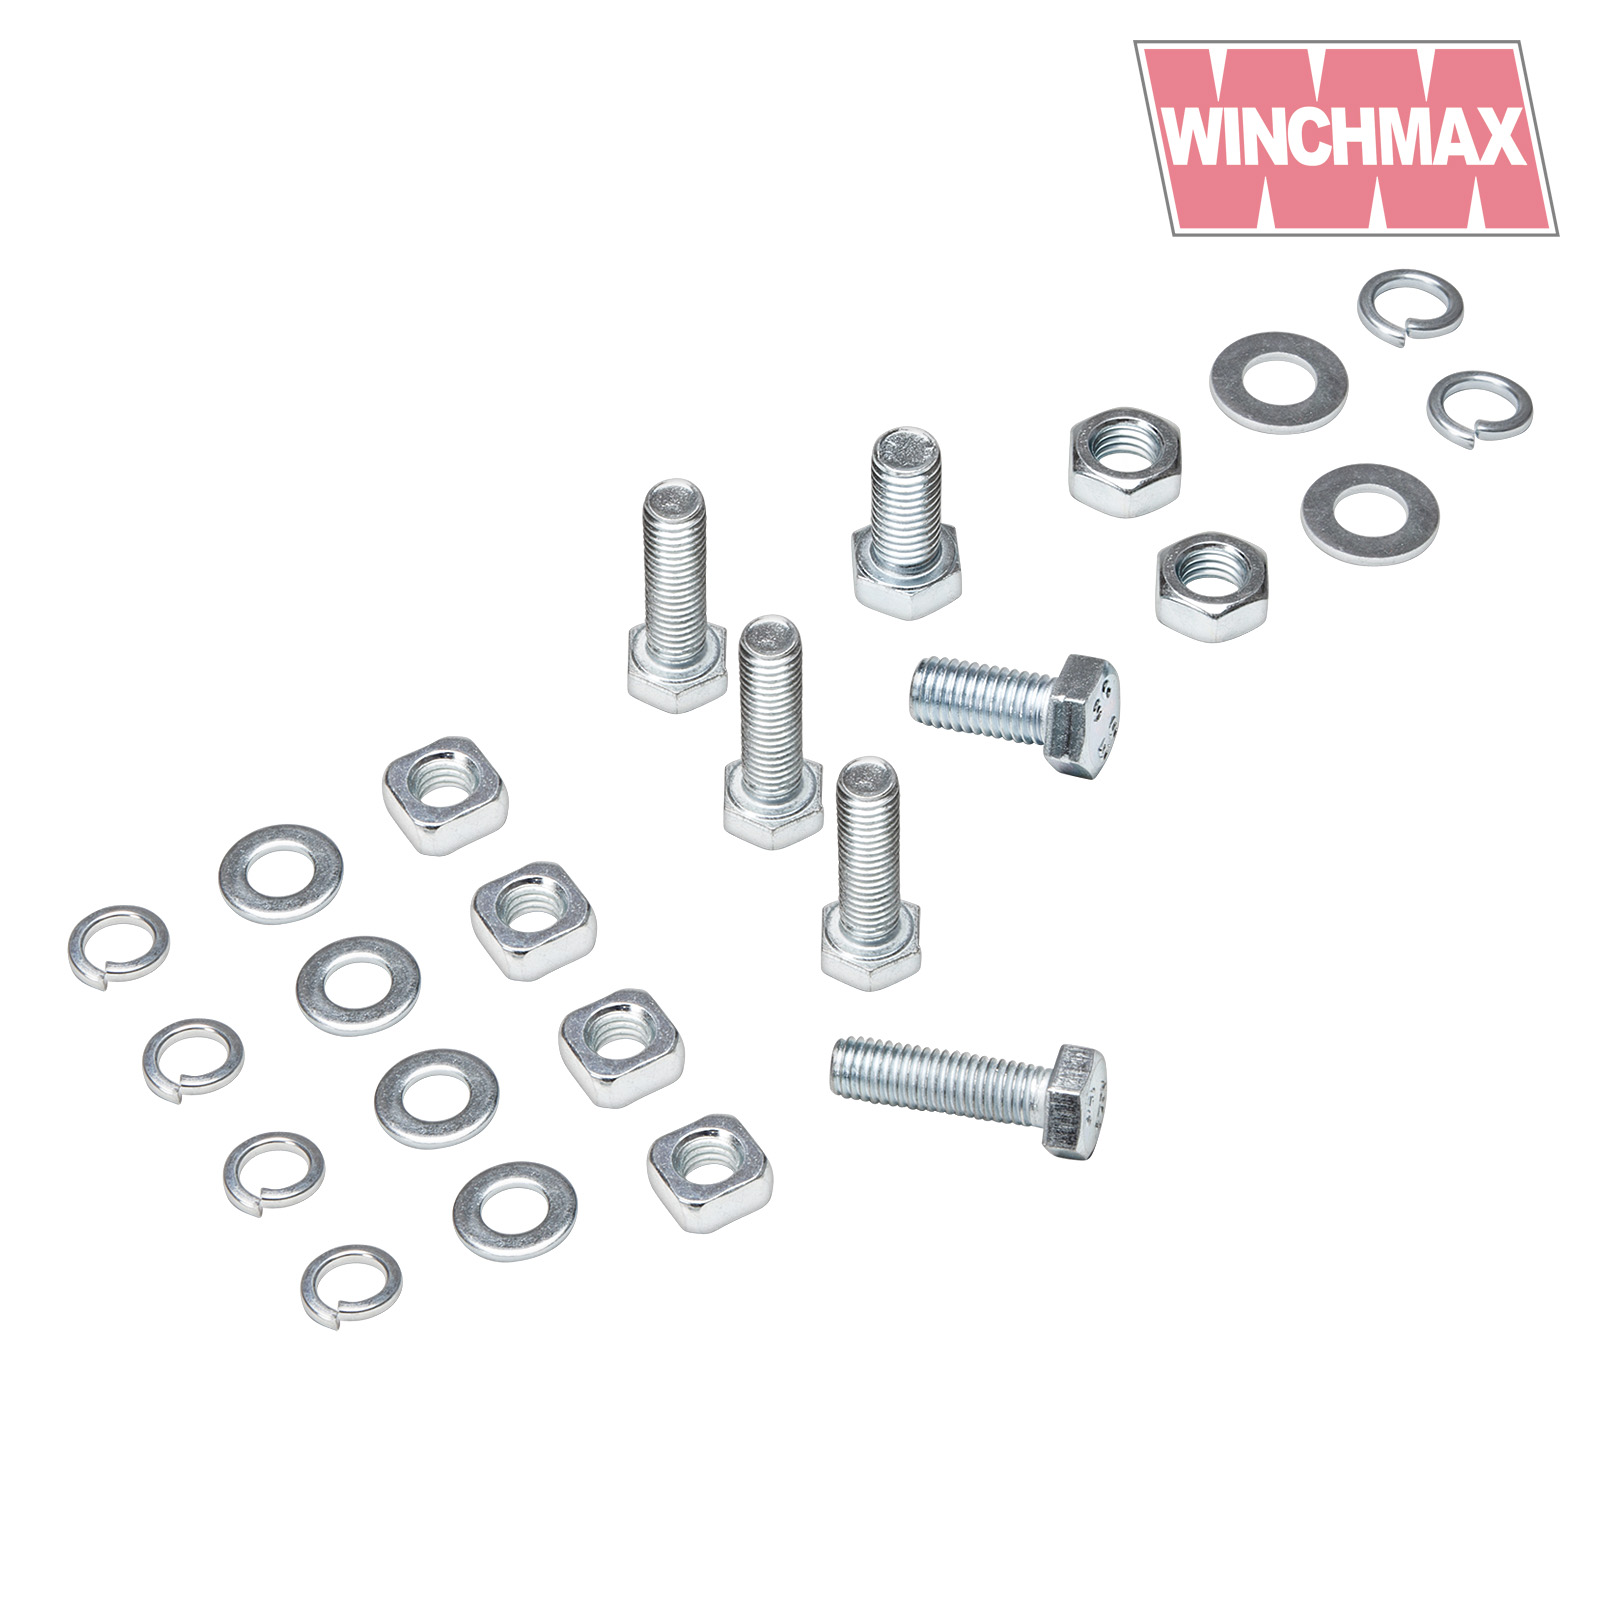 13500 mounting bolt kit winchmax 605